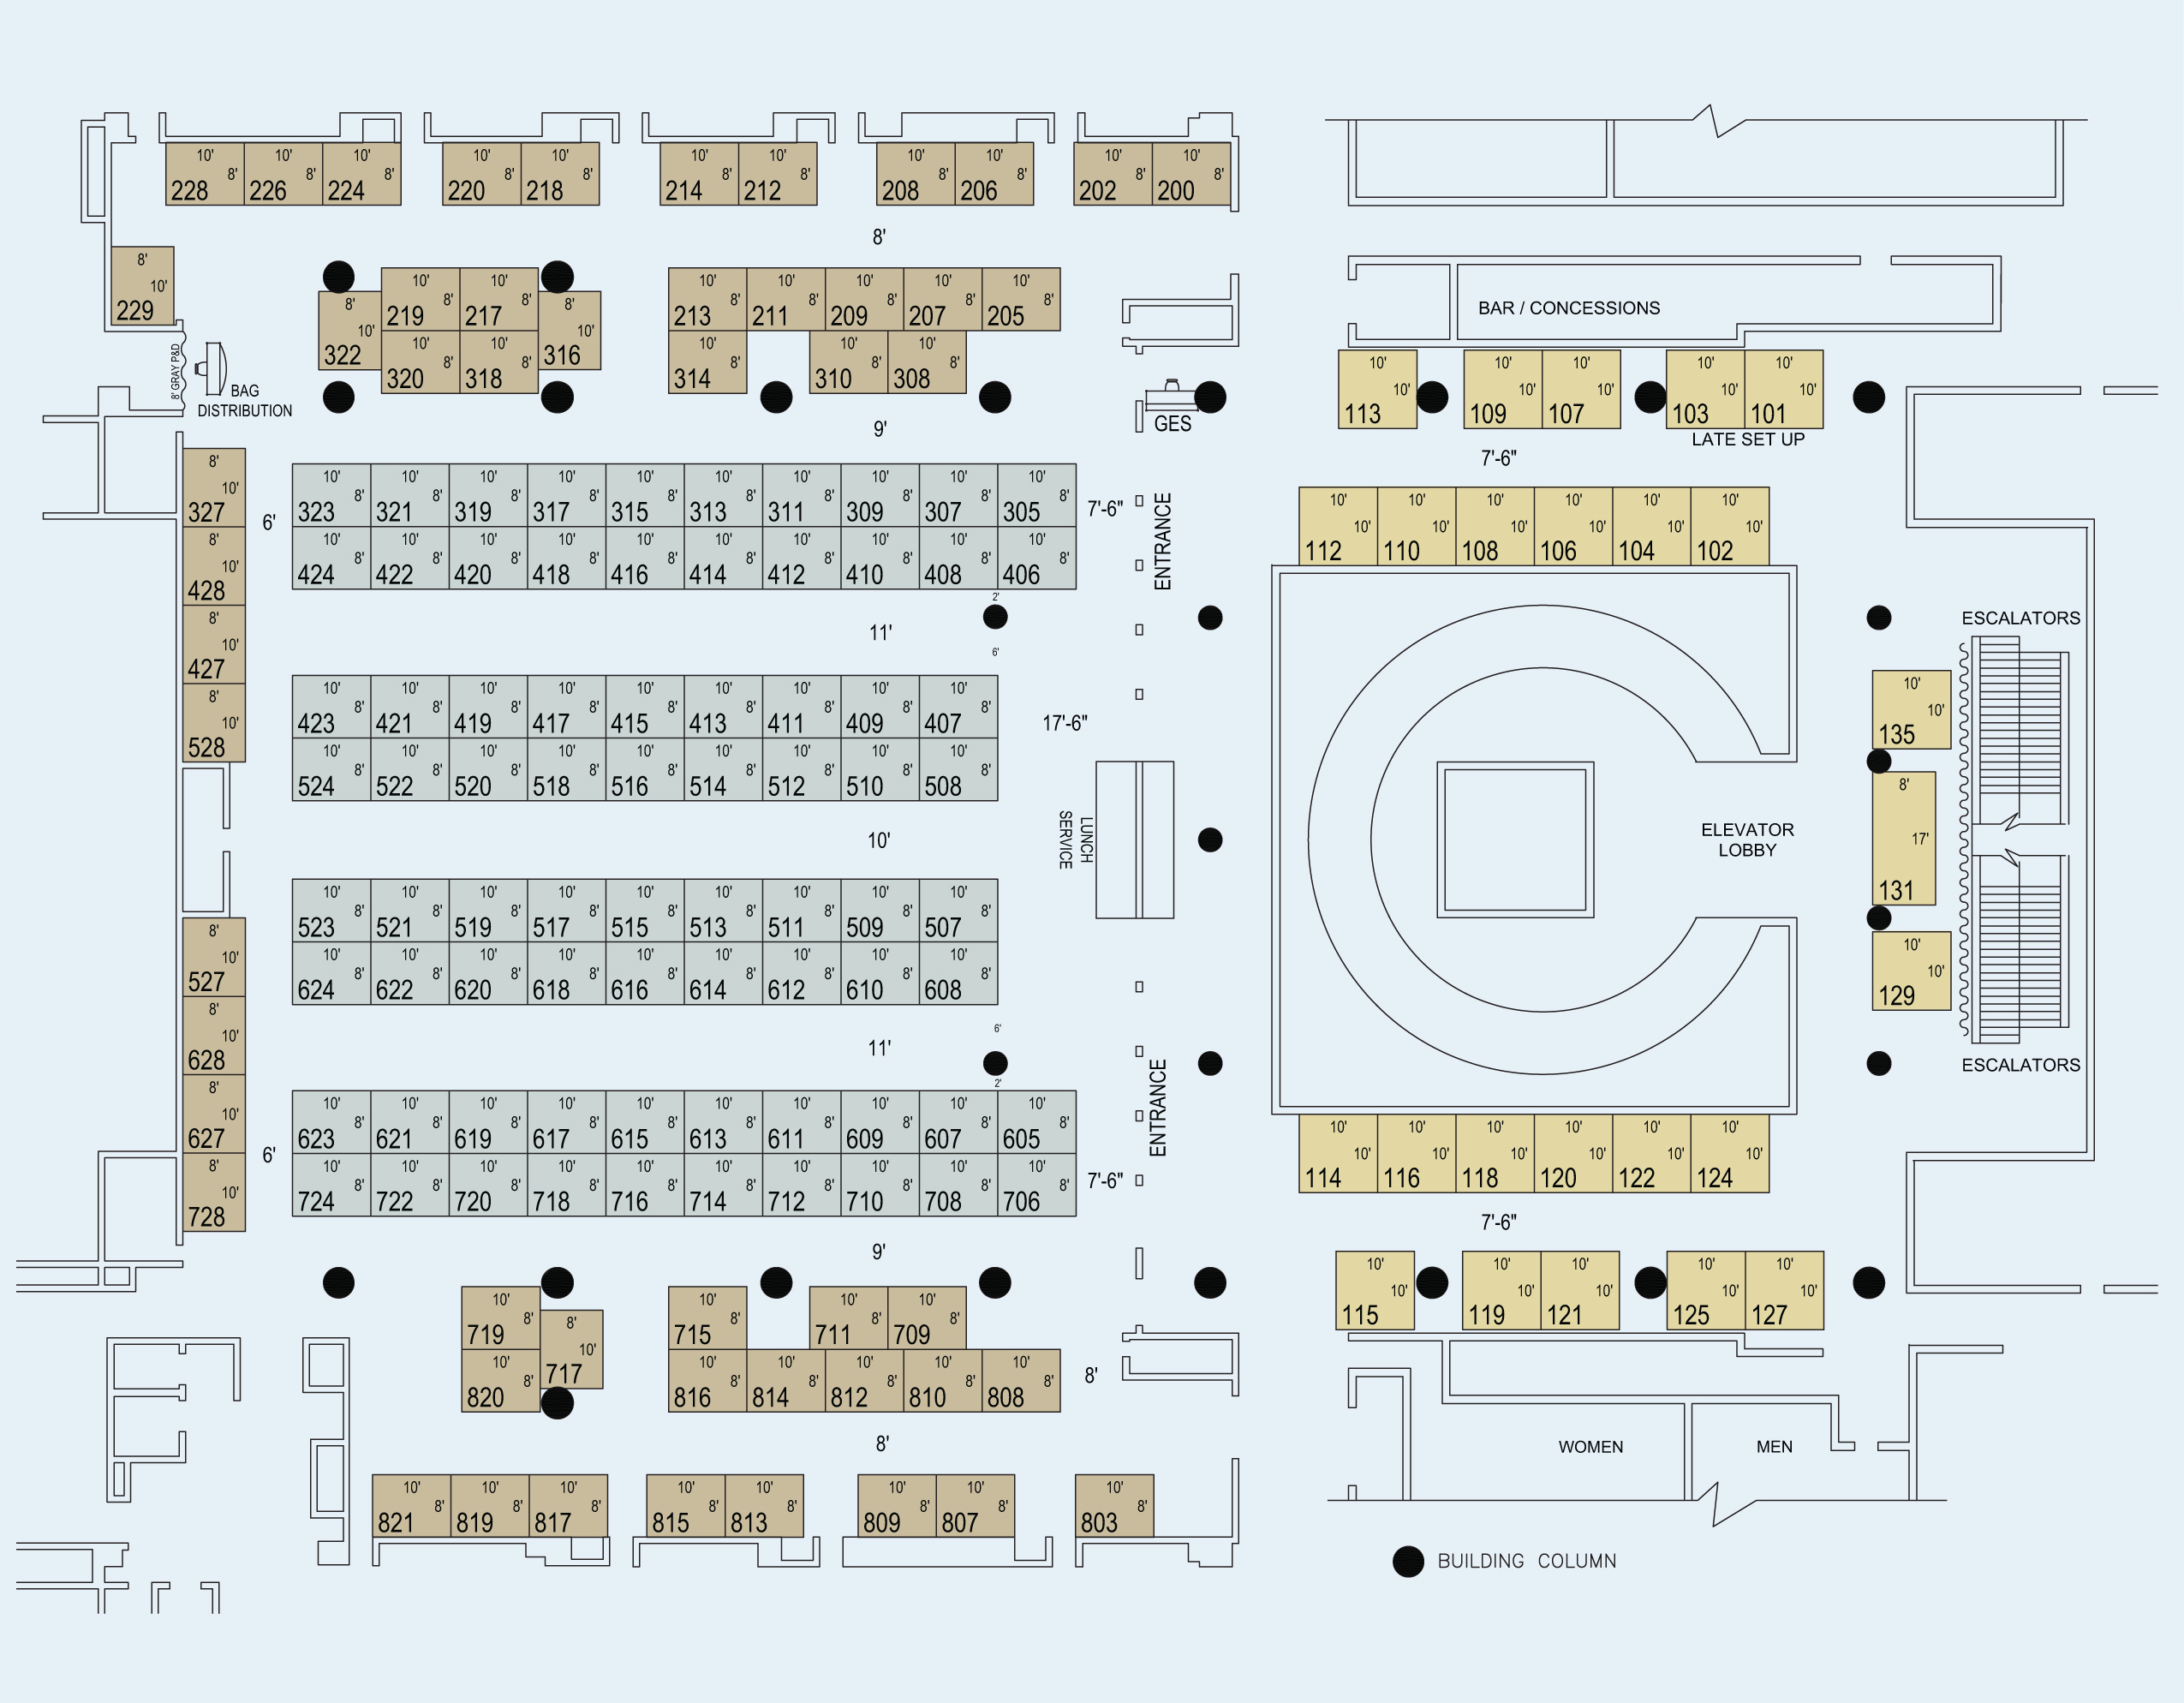 PGA71 Exhibitor Floor Plan